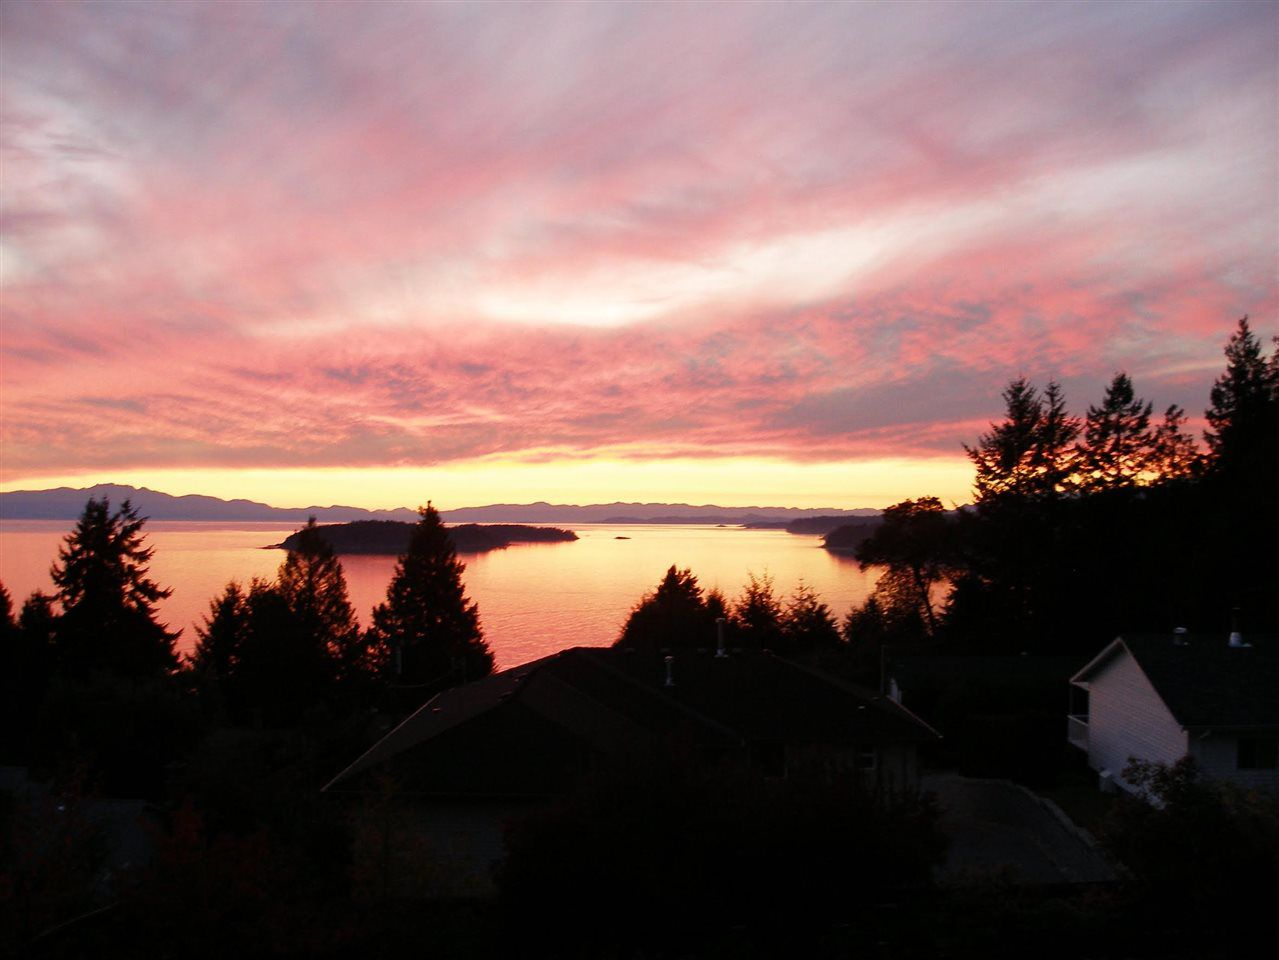 Westerly views towards Georgia Strait and Trail Islands.  Stunning sunsets!